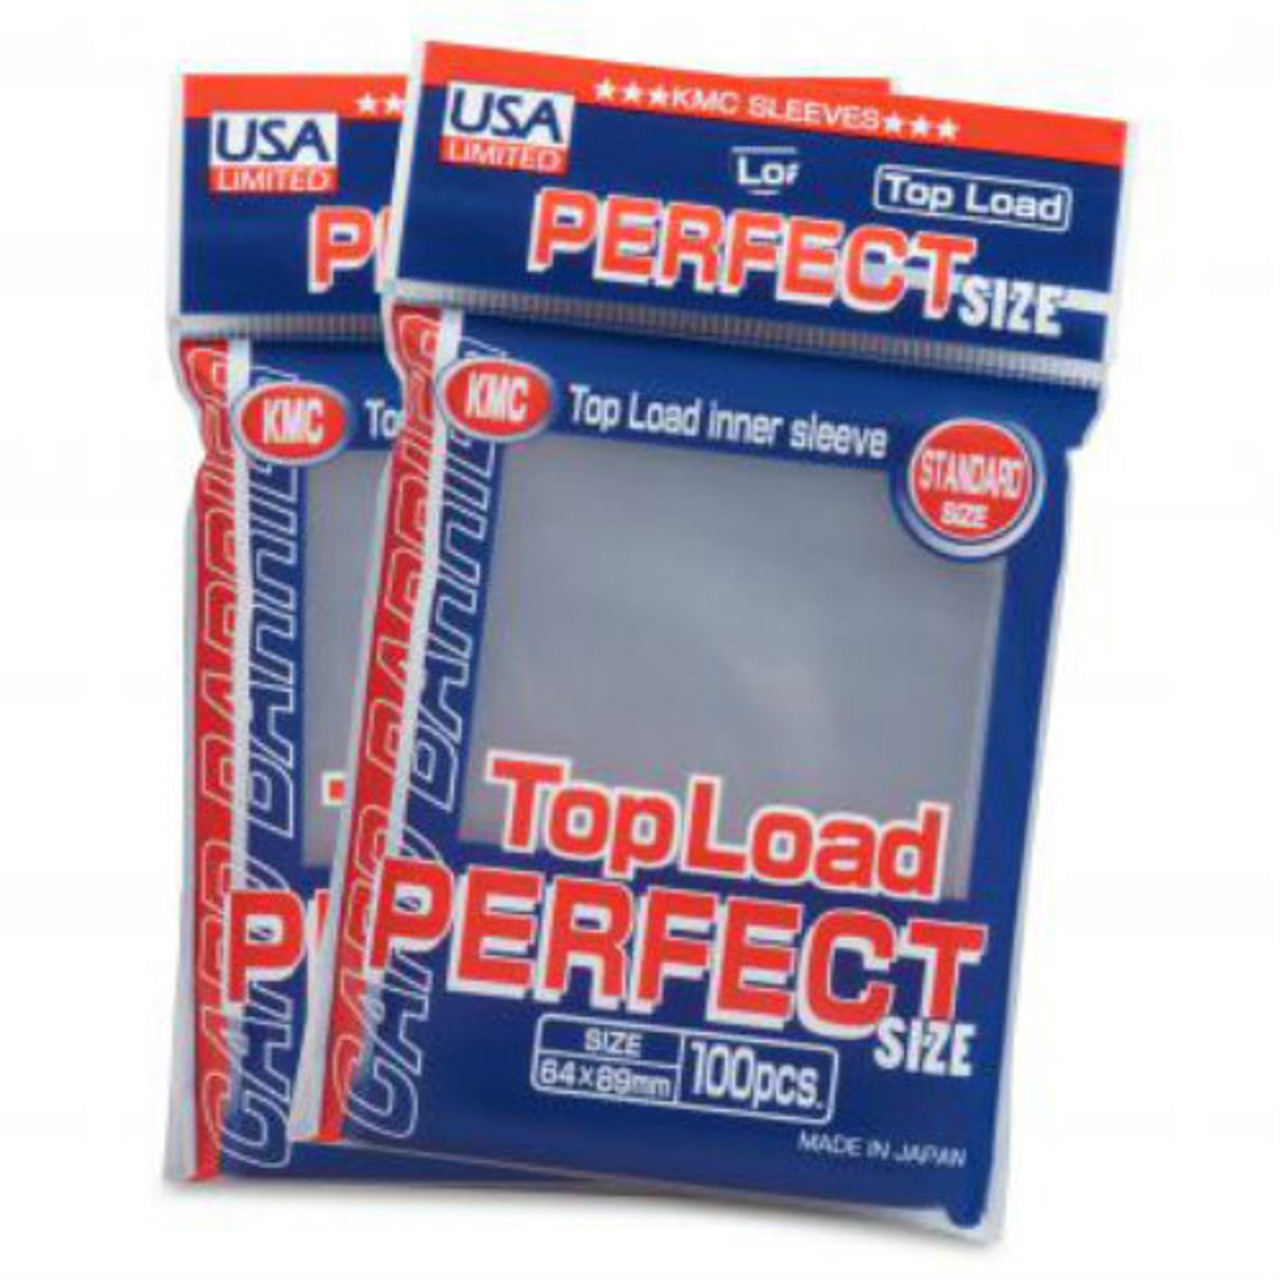 KMC: Perfect Size Sleeves - Top Load